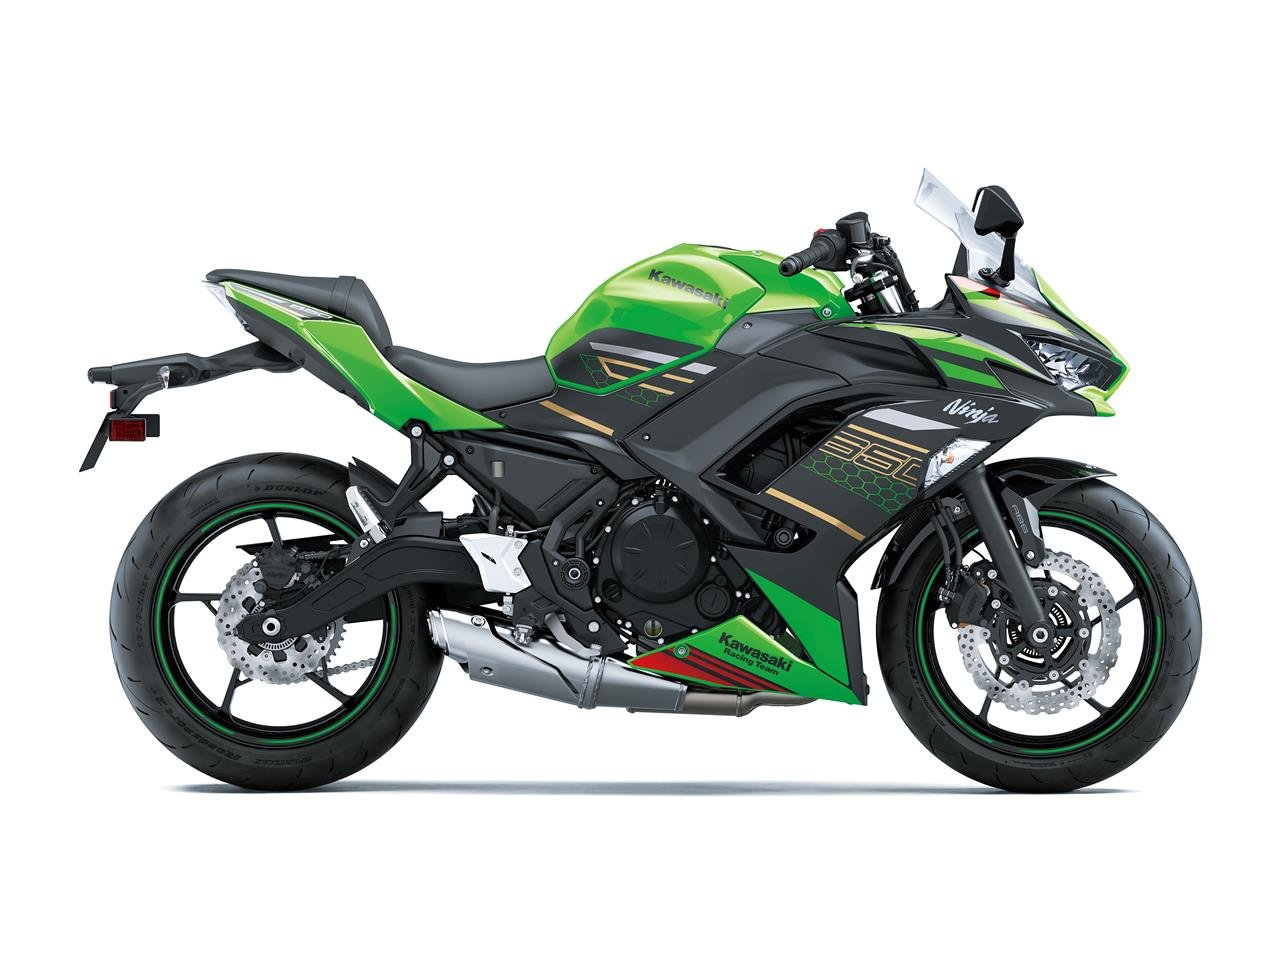 New 2020 Kawasaki Ninja 650 KRT*FREE DELIVERY & 3YR 0% APR* For Sale (picture 2 of 6)